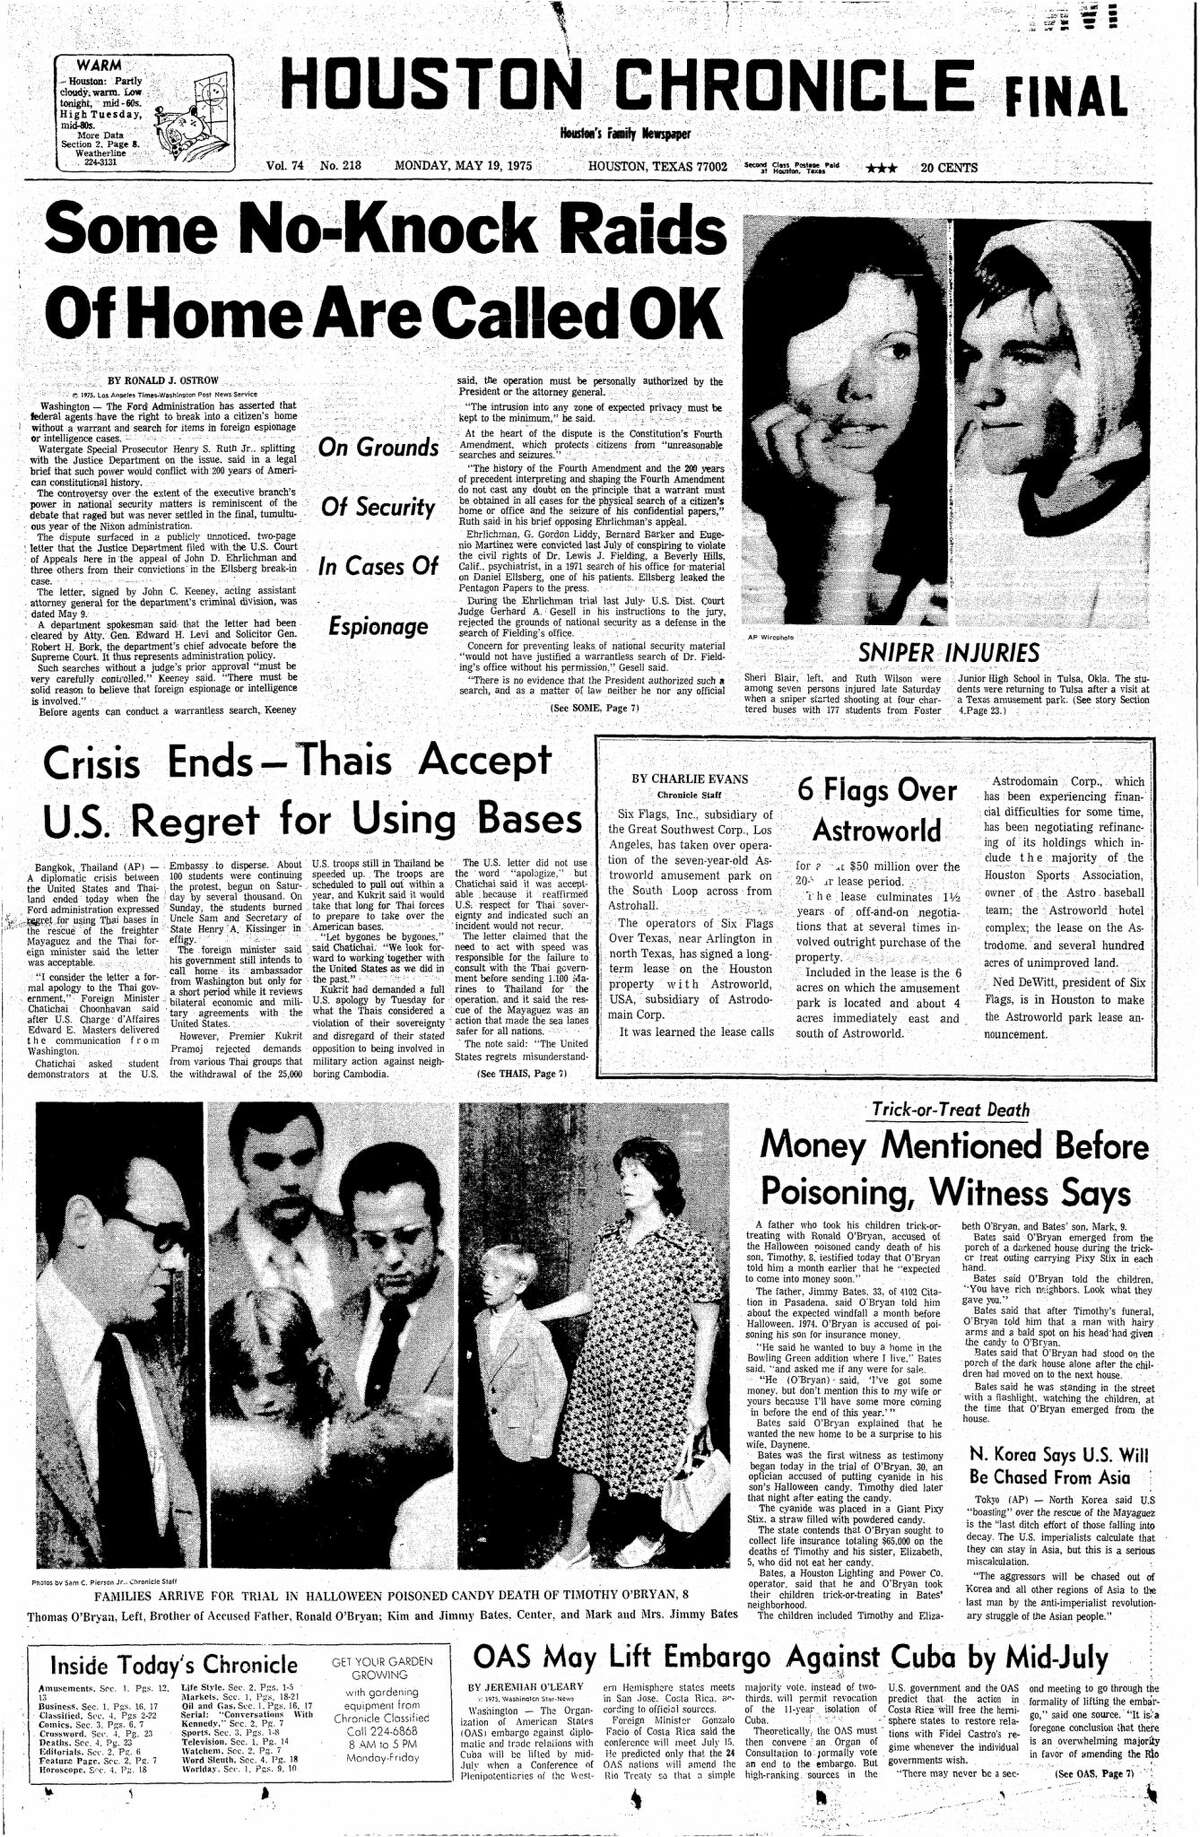 Houston Chronicle front page from May 19, 1975.